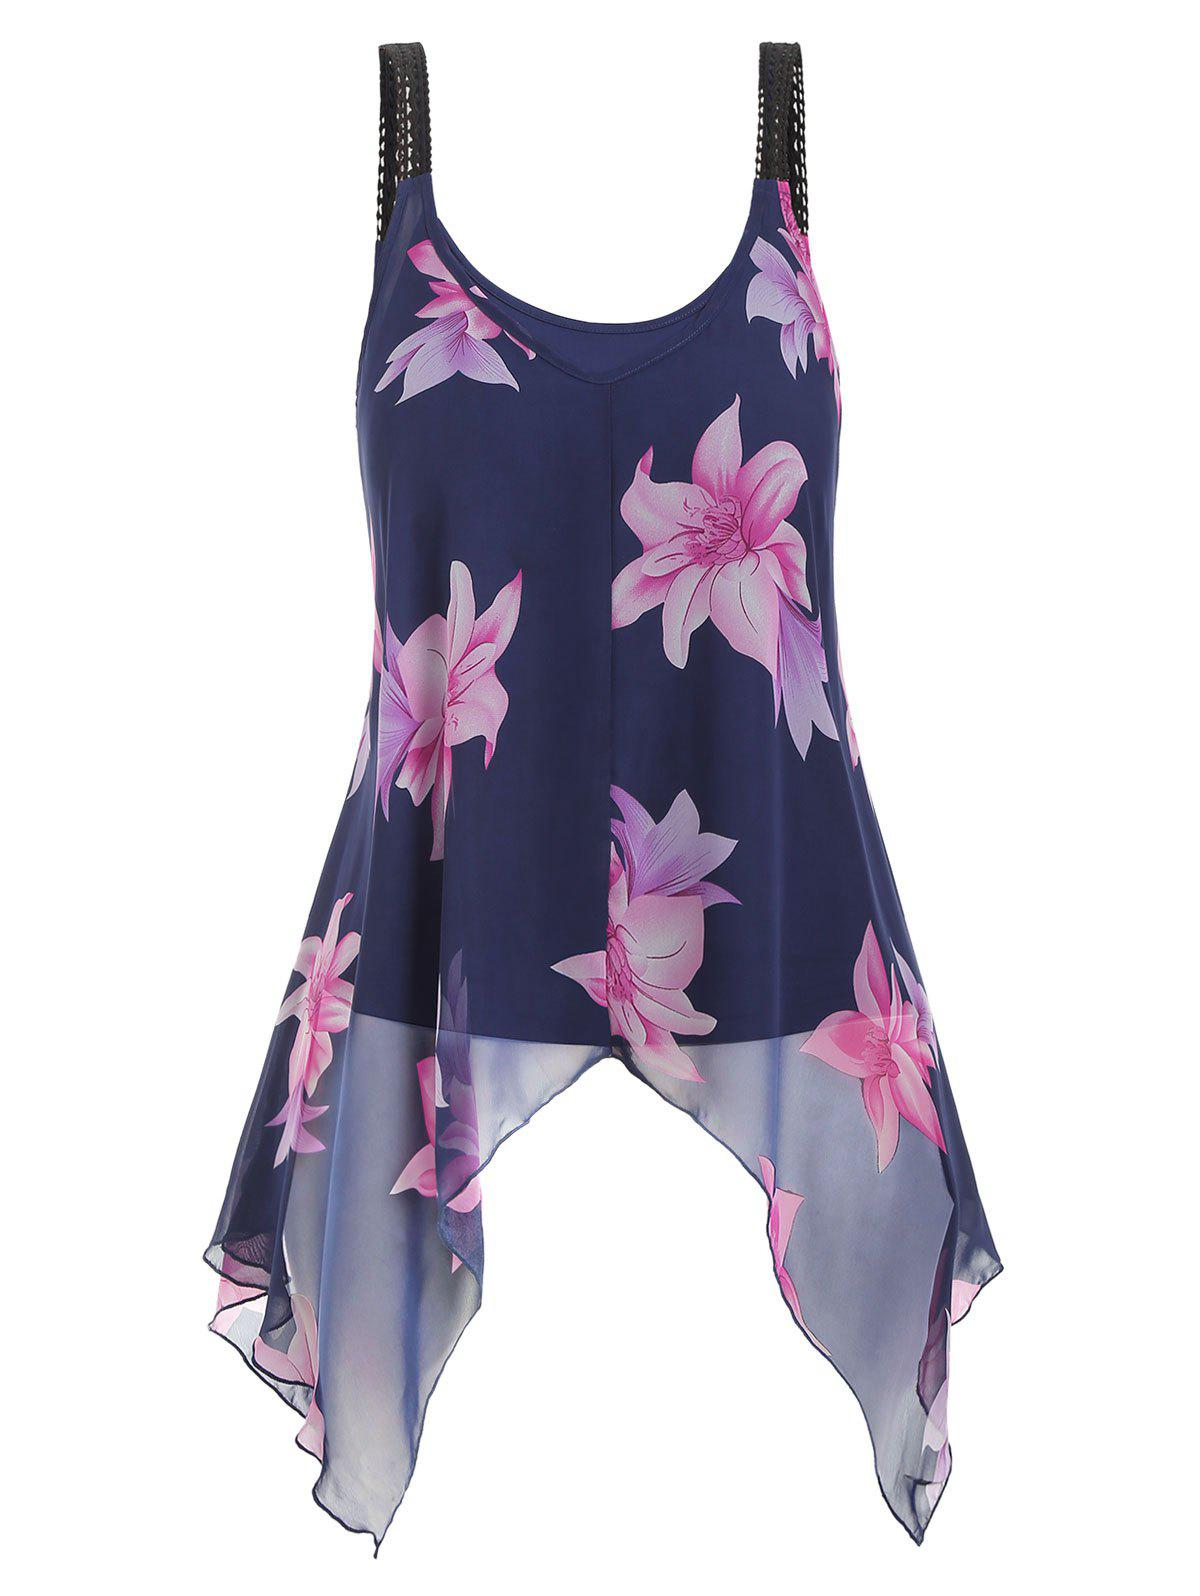 Sale Plus Size Camisole and Floral Handkerchief Tank Top